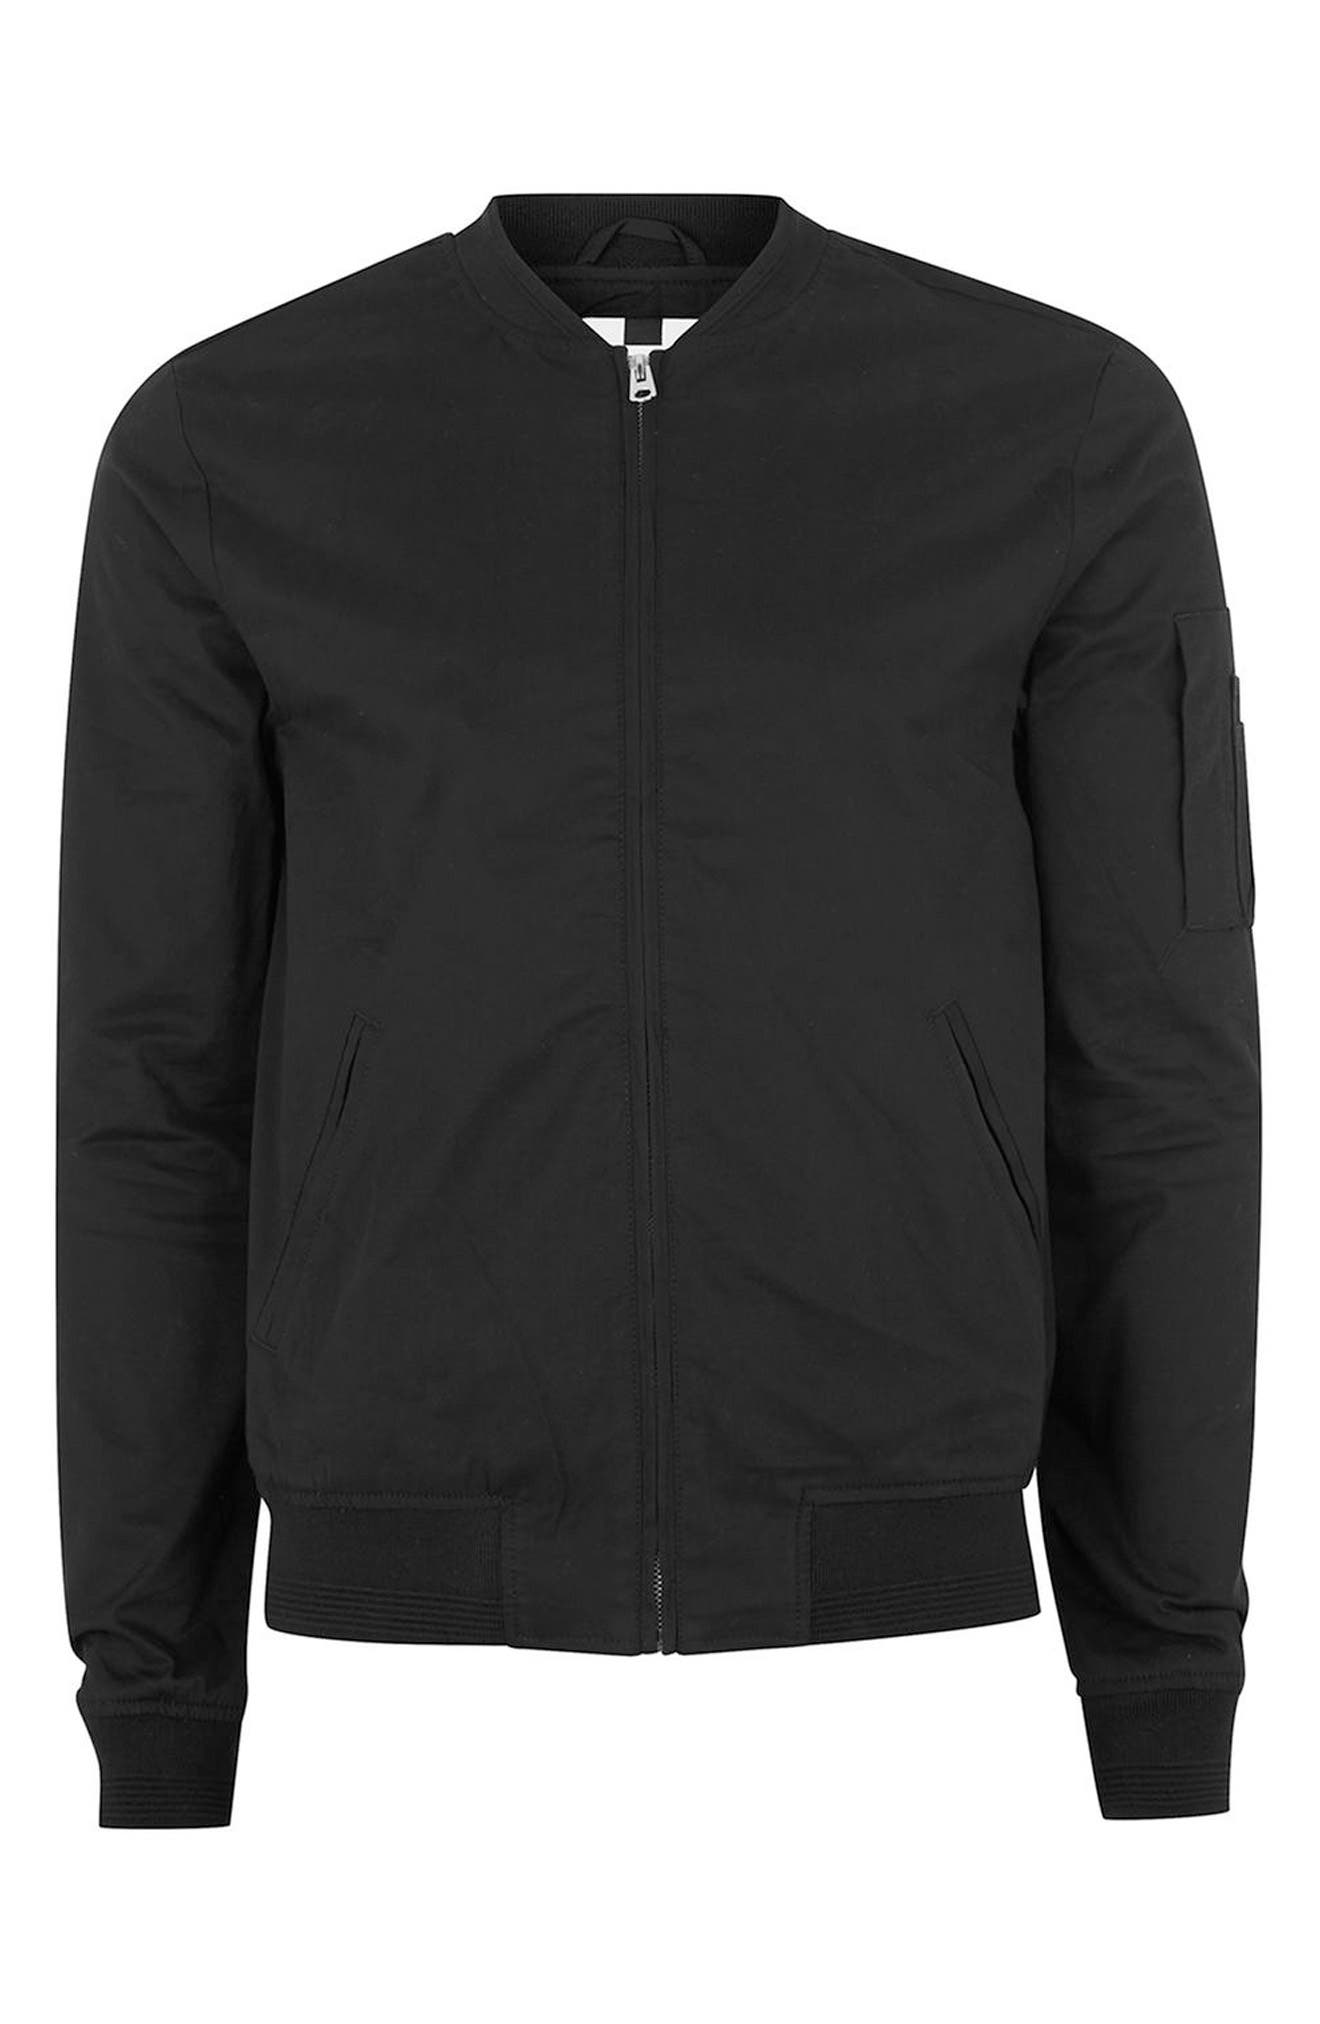 Muscle Fit Bomber Jacket,                             Alternate thumbnail 4, color,                             001